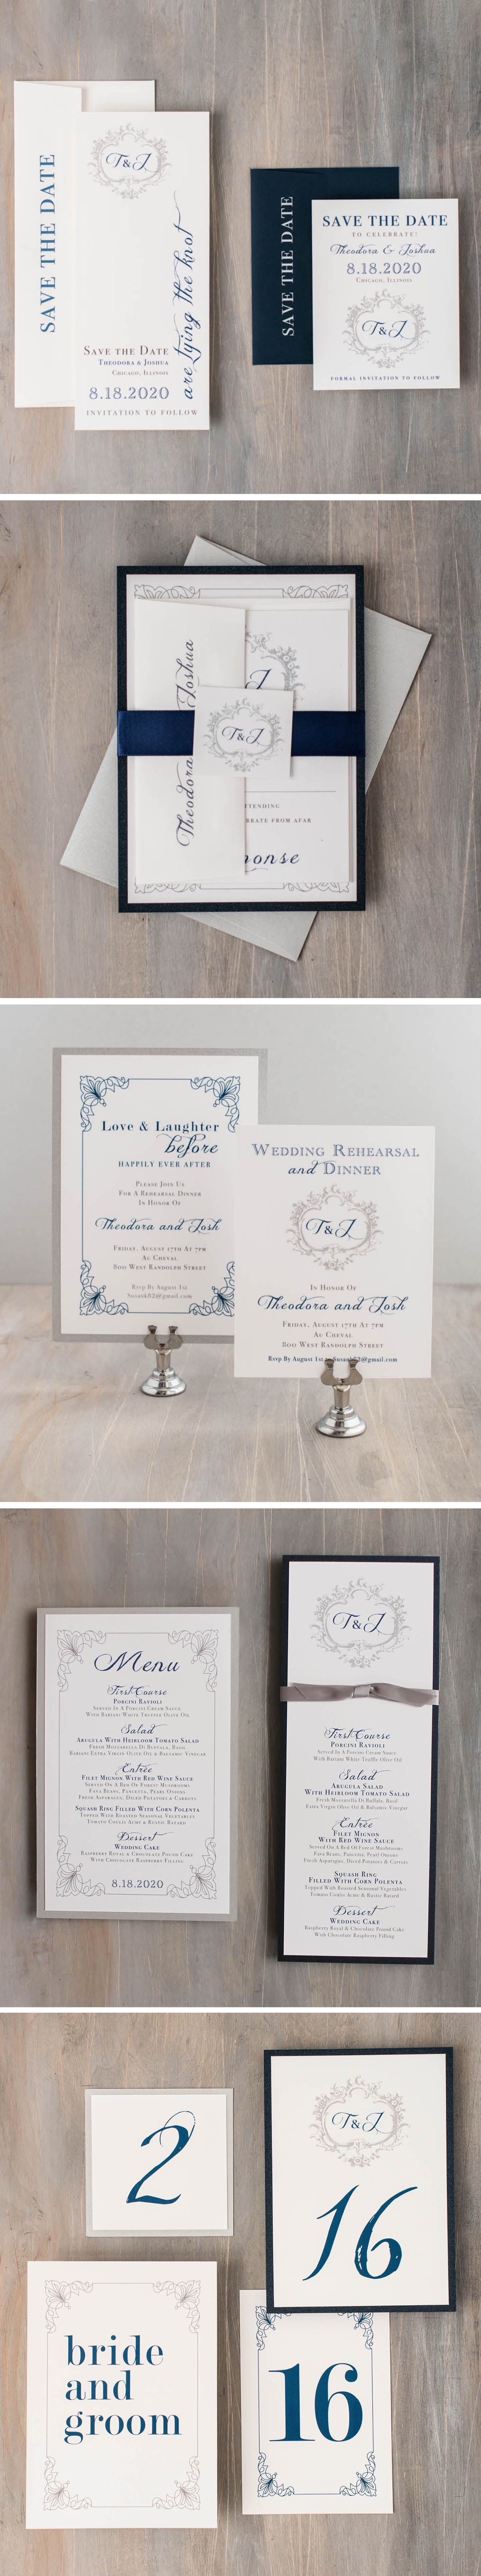 from wedding invitations to save the dates and ceremony programs